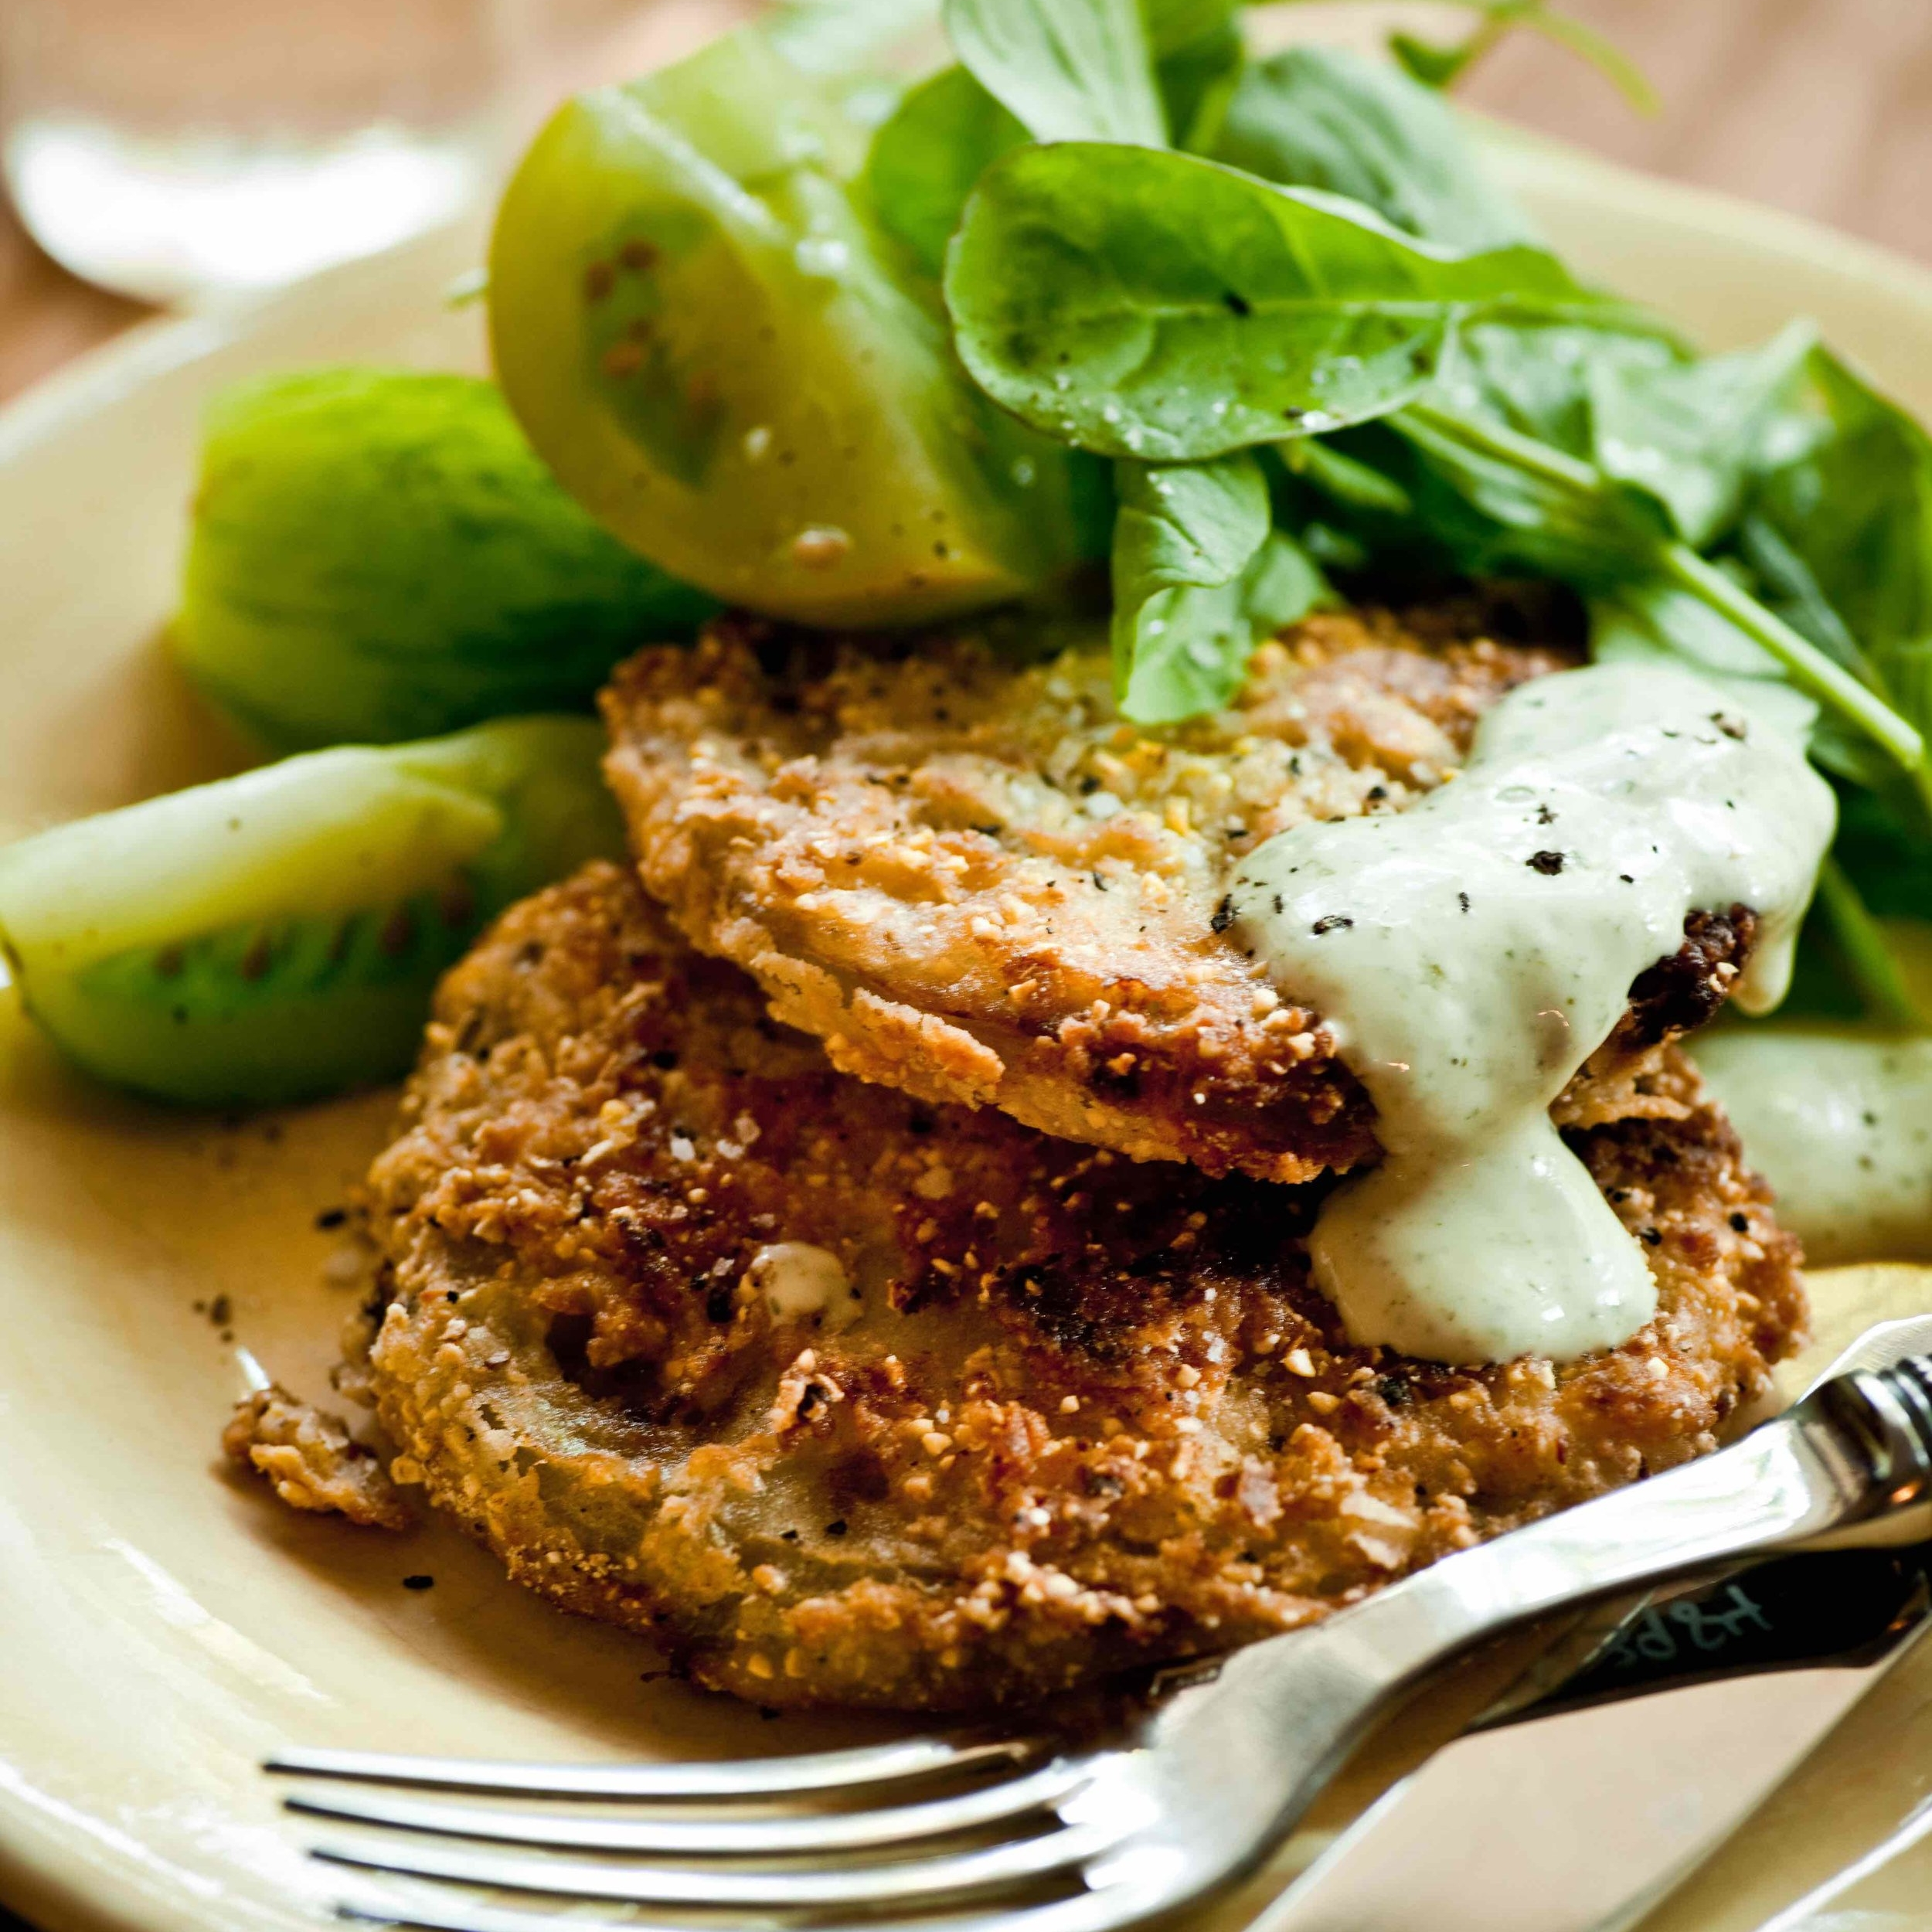 fried green tomatoes with Green Goddess-sara_shoot2_0184 copy.jpg